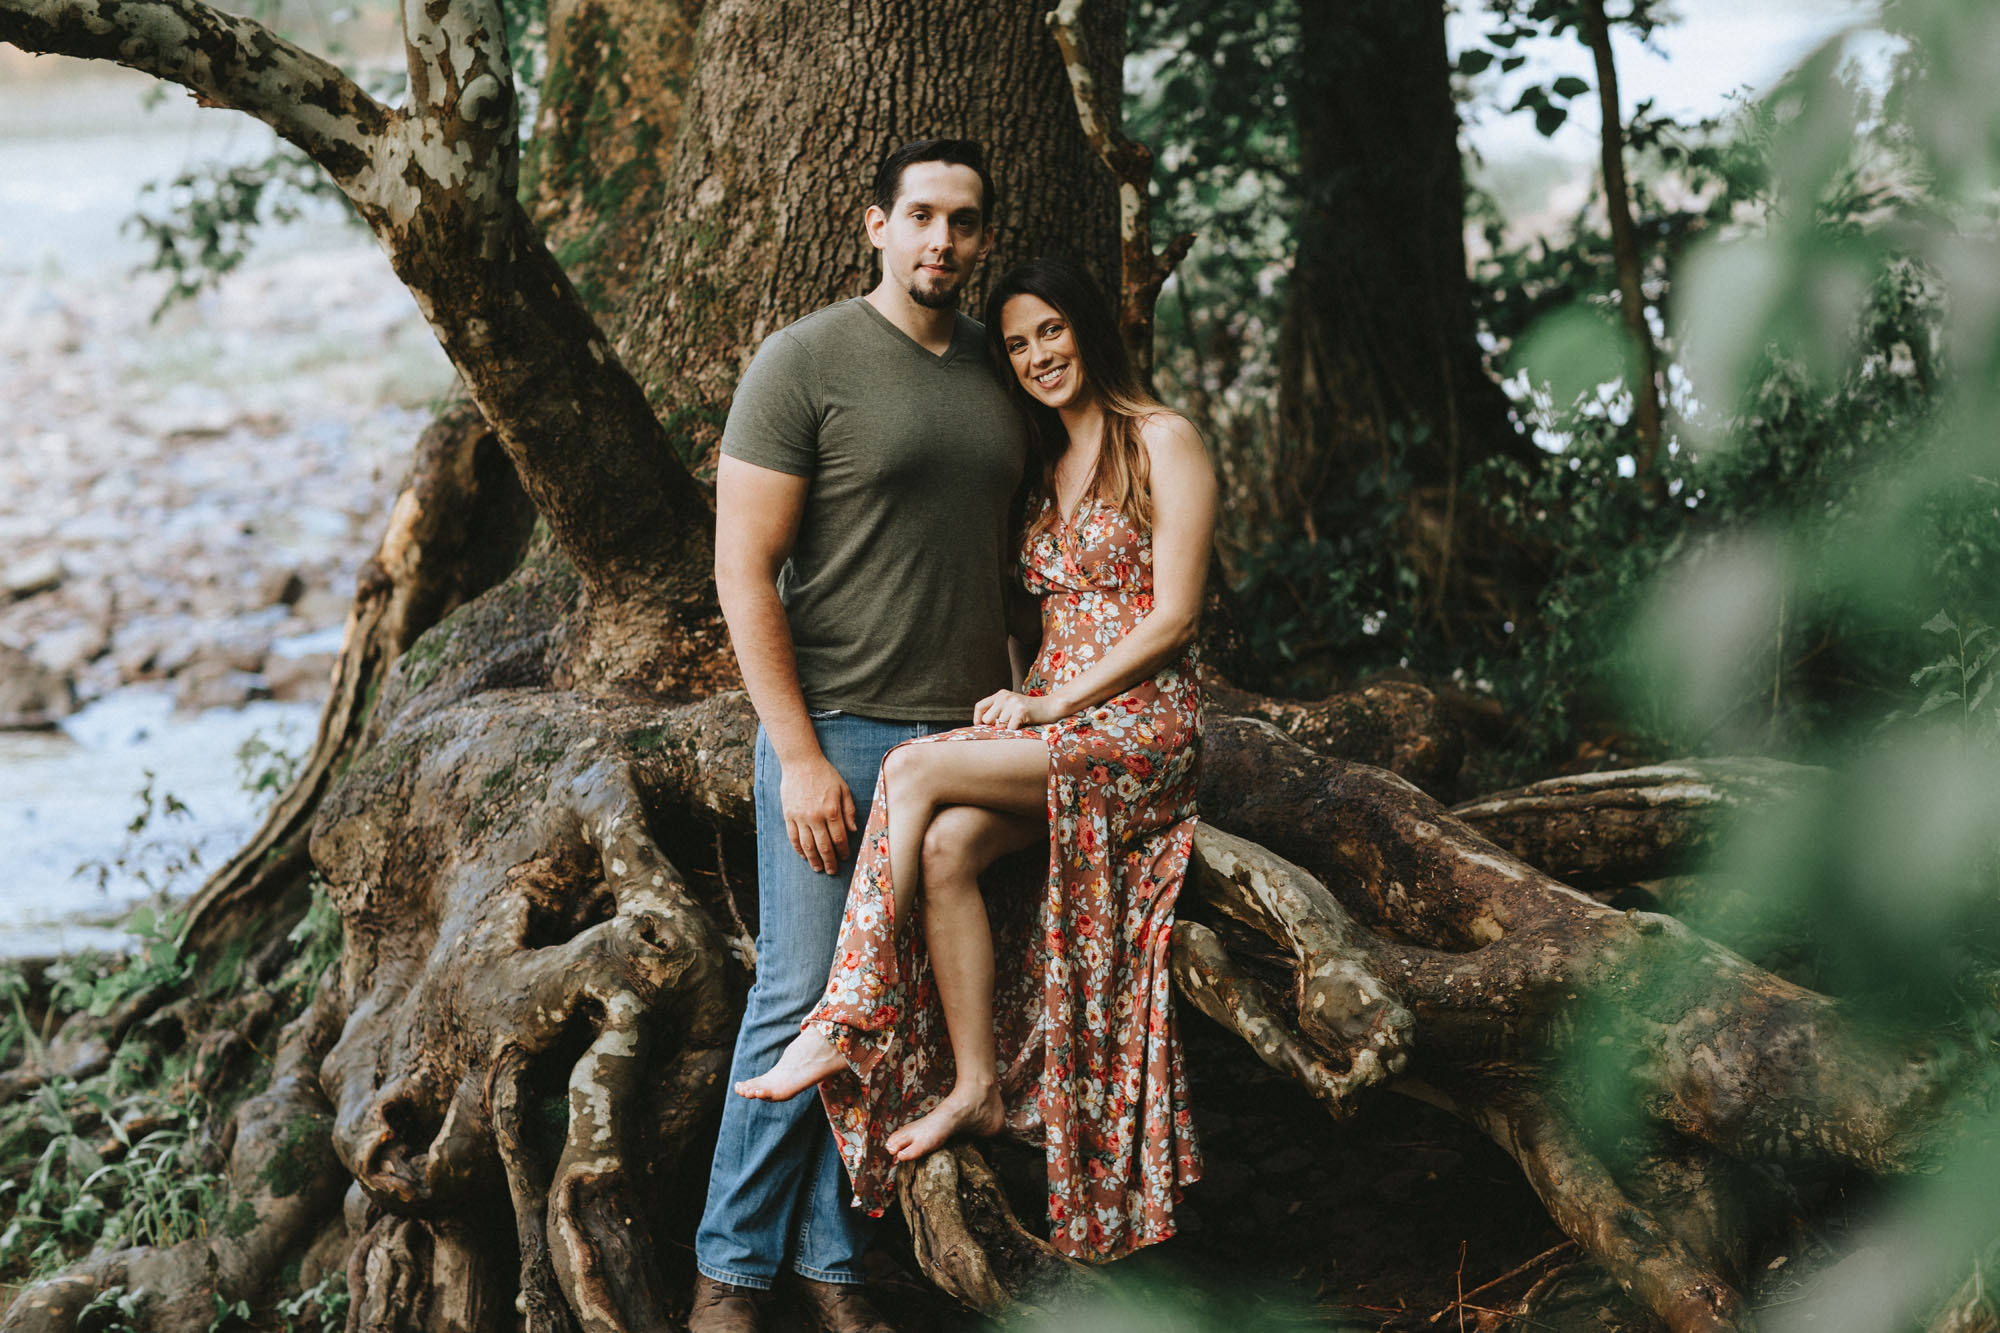 Twisted-Oaks-Studio-Tyler-Park-Engagement-9716.jpg